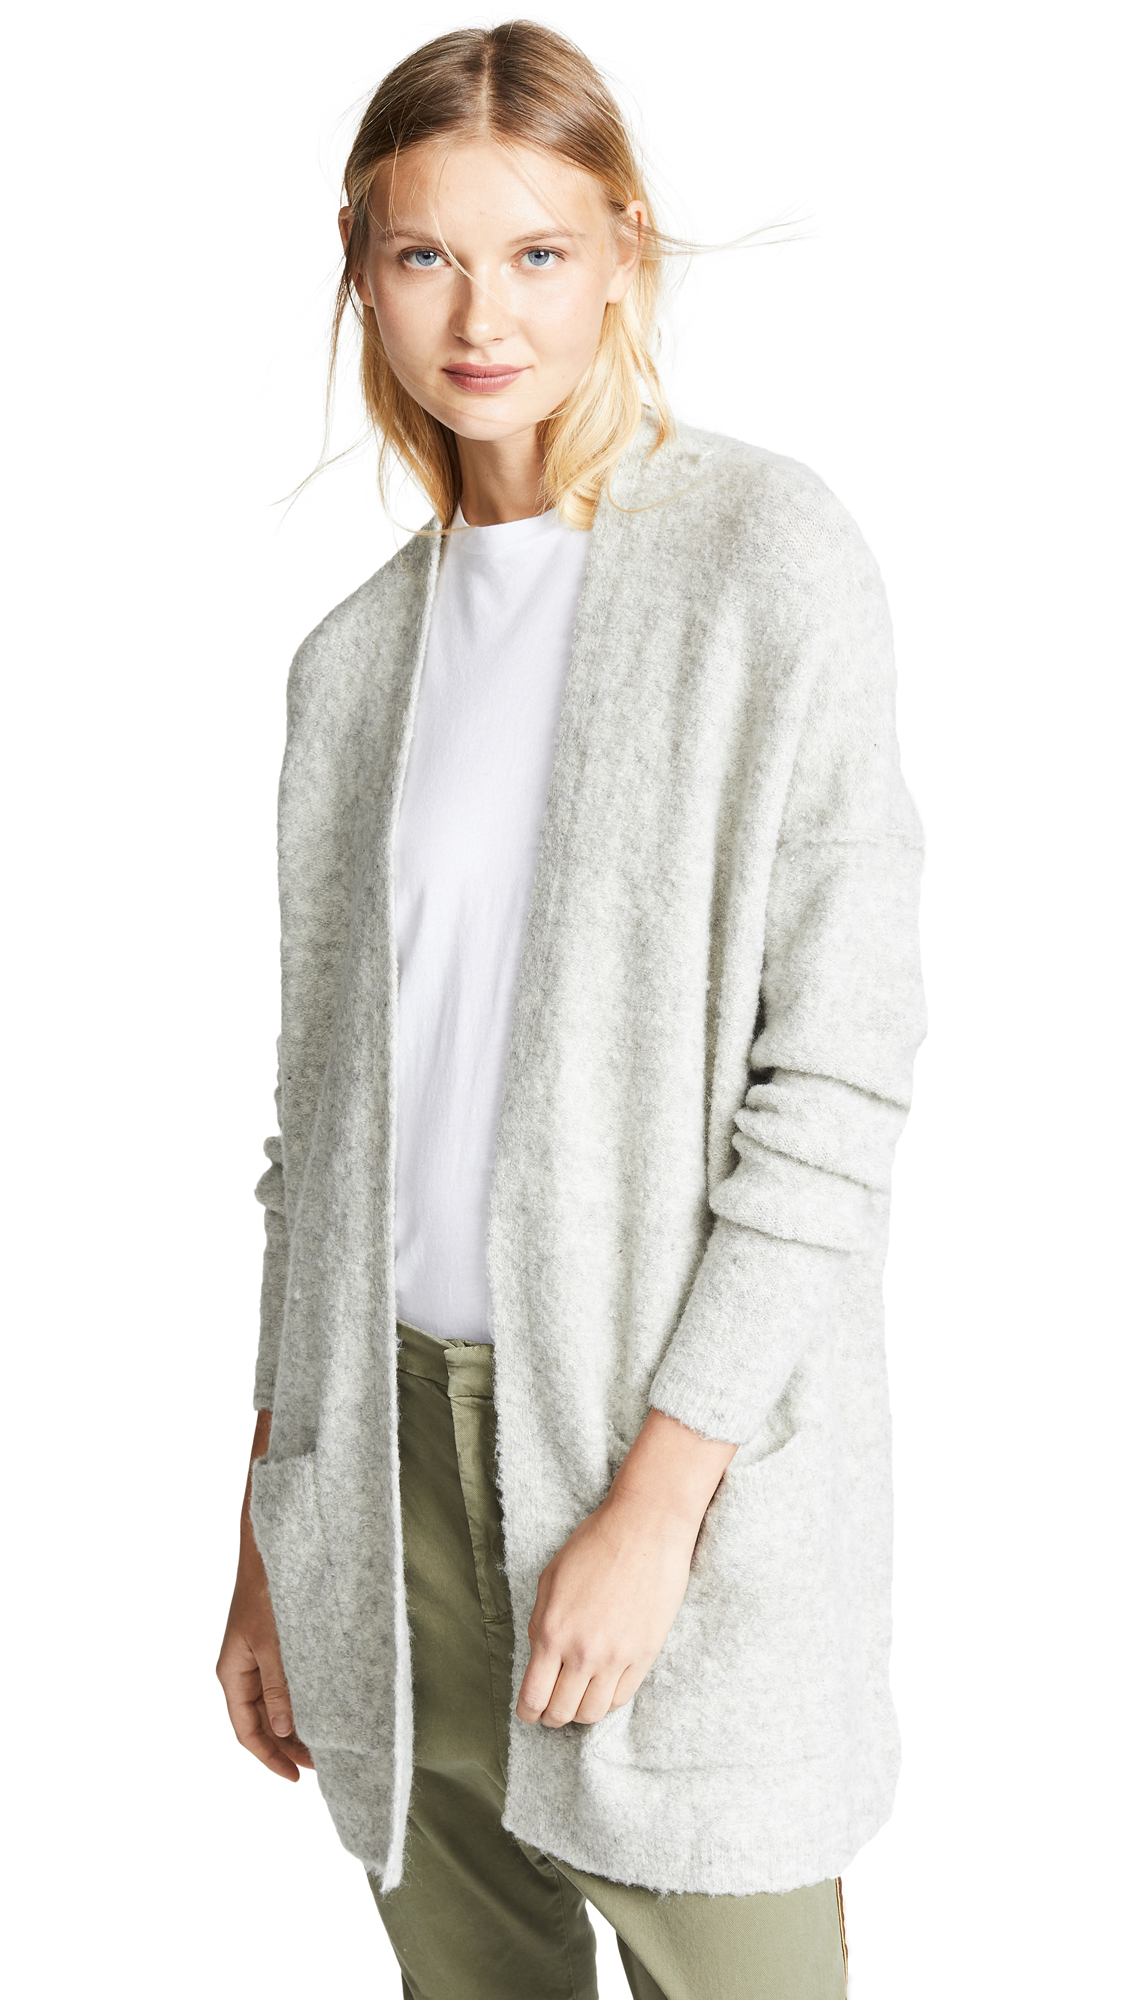 Free People Phantom Cardigan - Grey